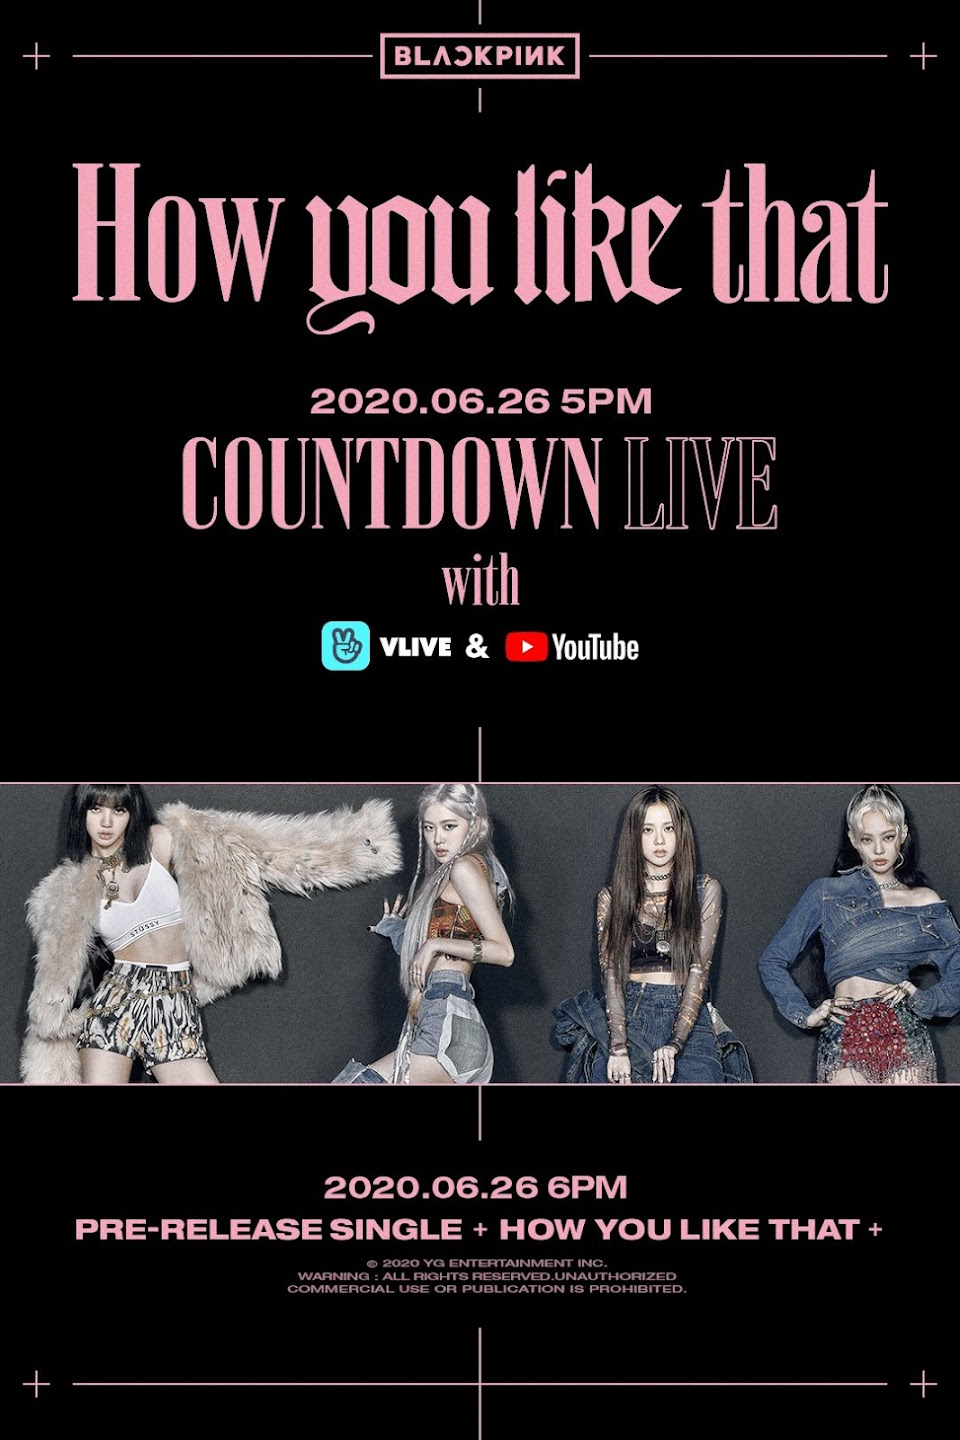 blackpink countdown live